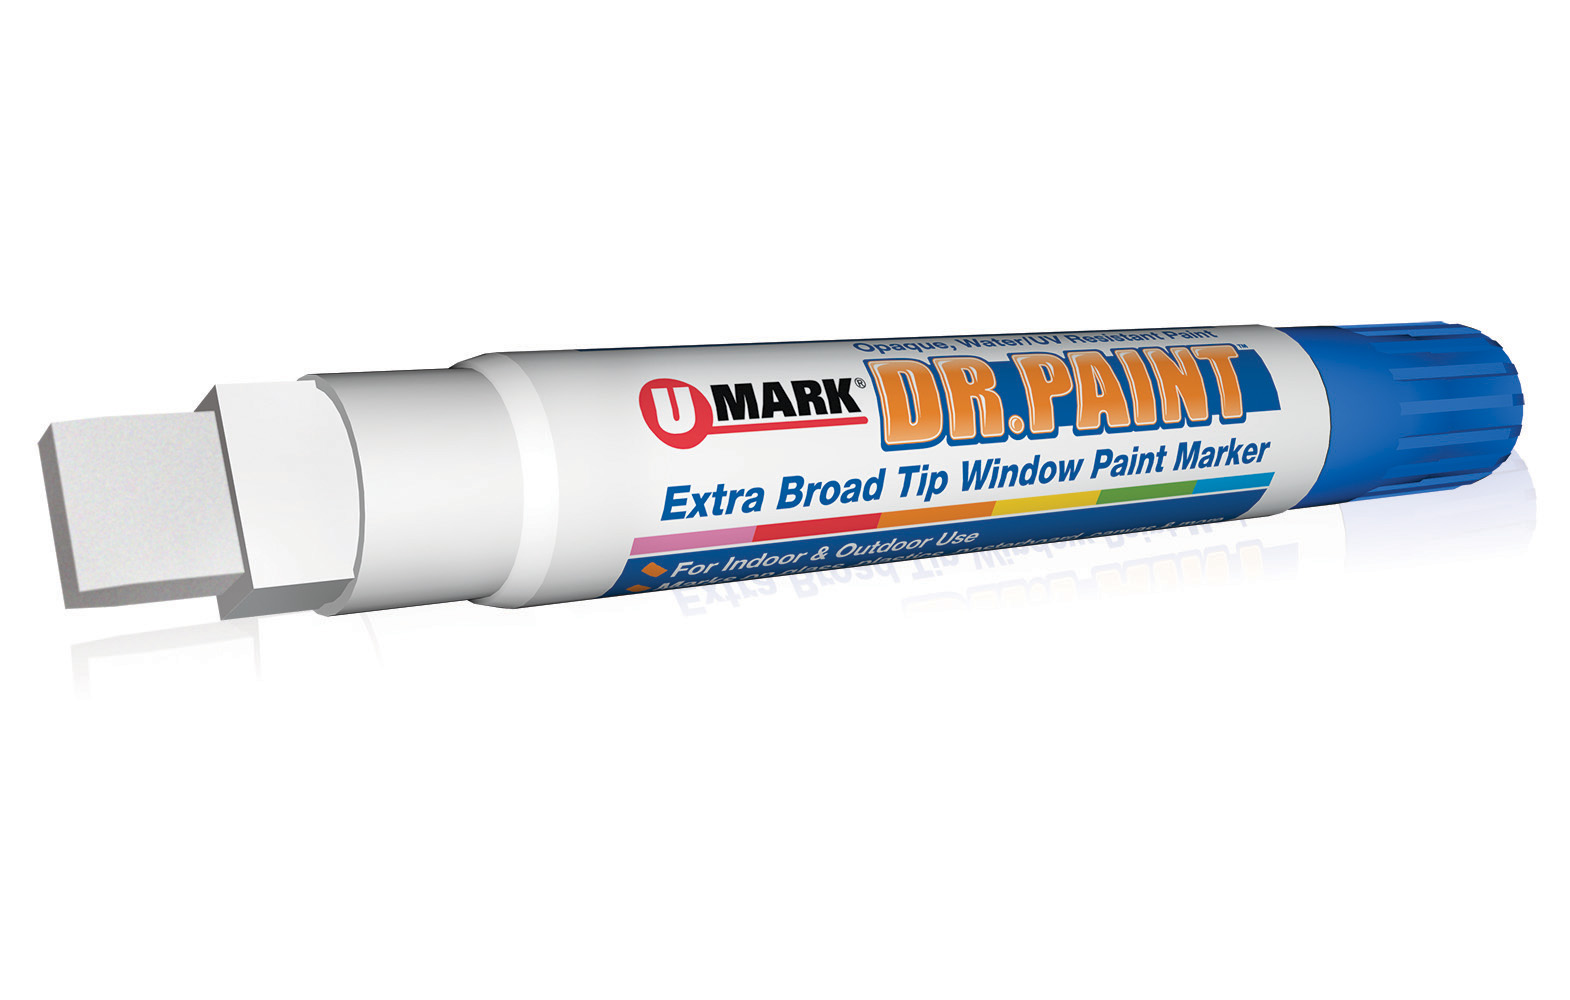 DR. PAINT™ Extra Broad Tip Window Paint Marker